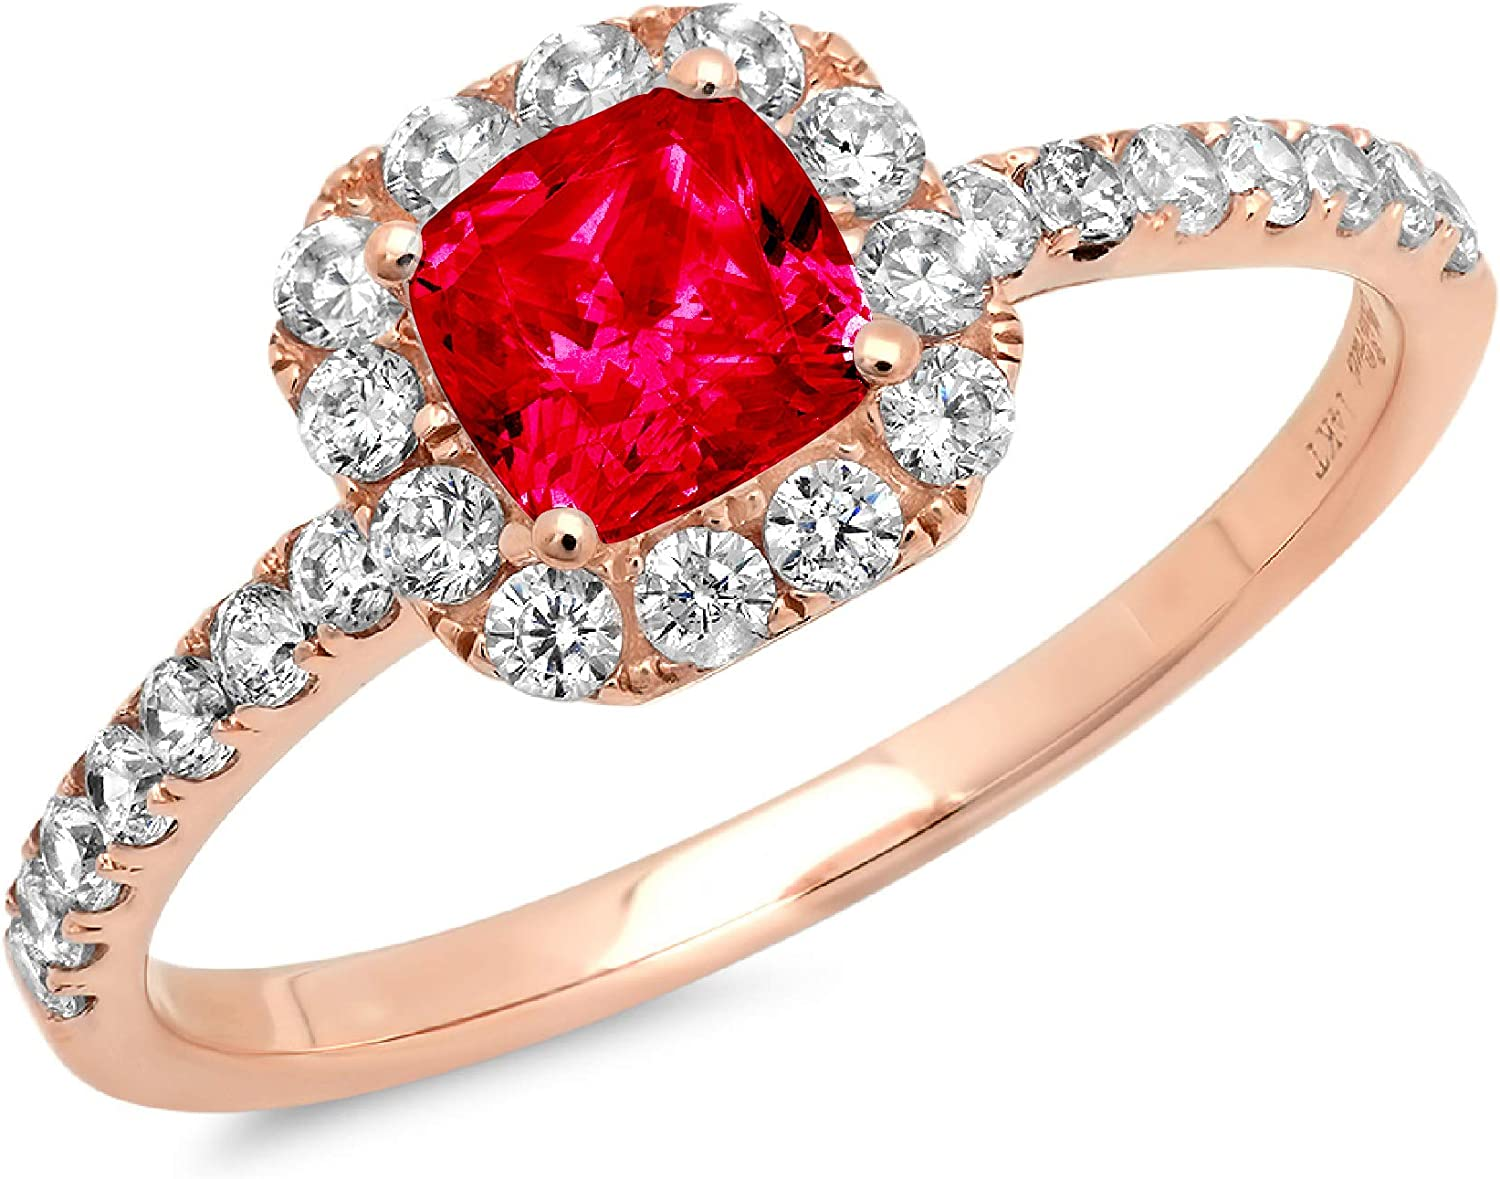 1.34ct Brilliant Princess Cut Solitaire with accent Flawless Ideal VVS1 Simulated CZ Red Ruby Engagement Promise Statement Anniversary Bridal Wedding Designer Ring 14k Rose Gold